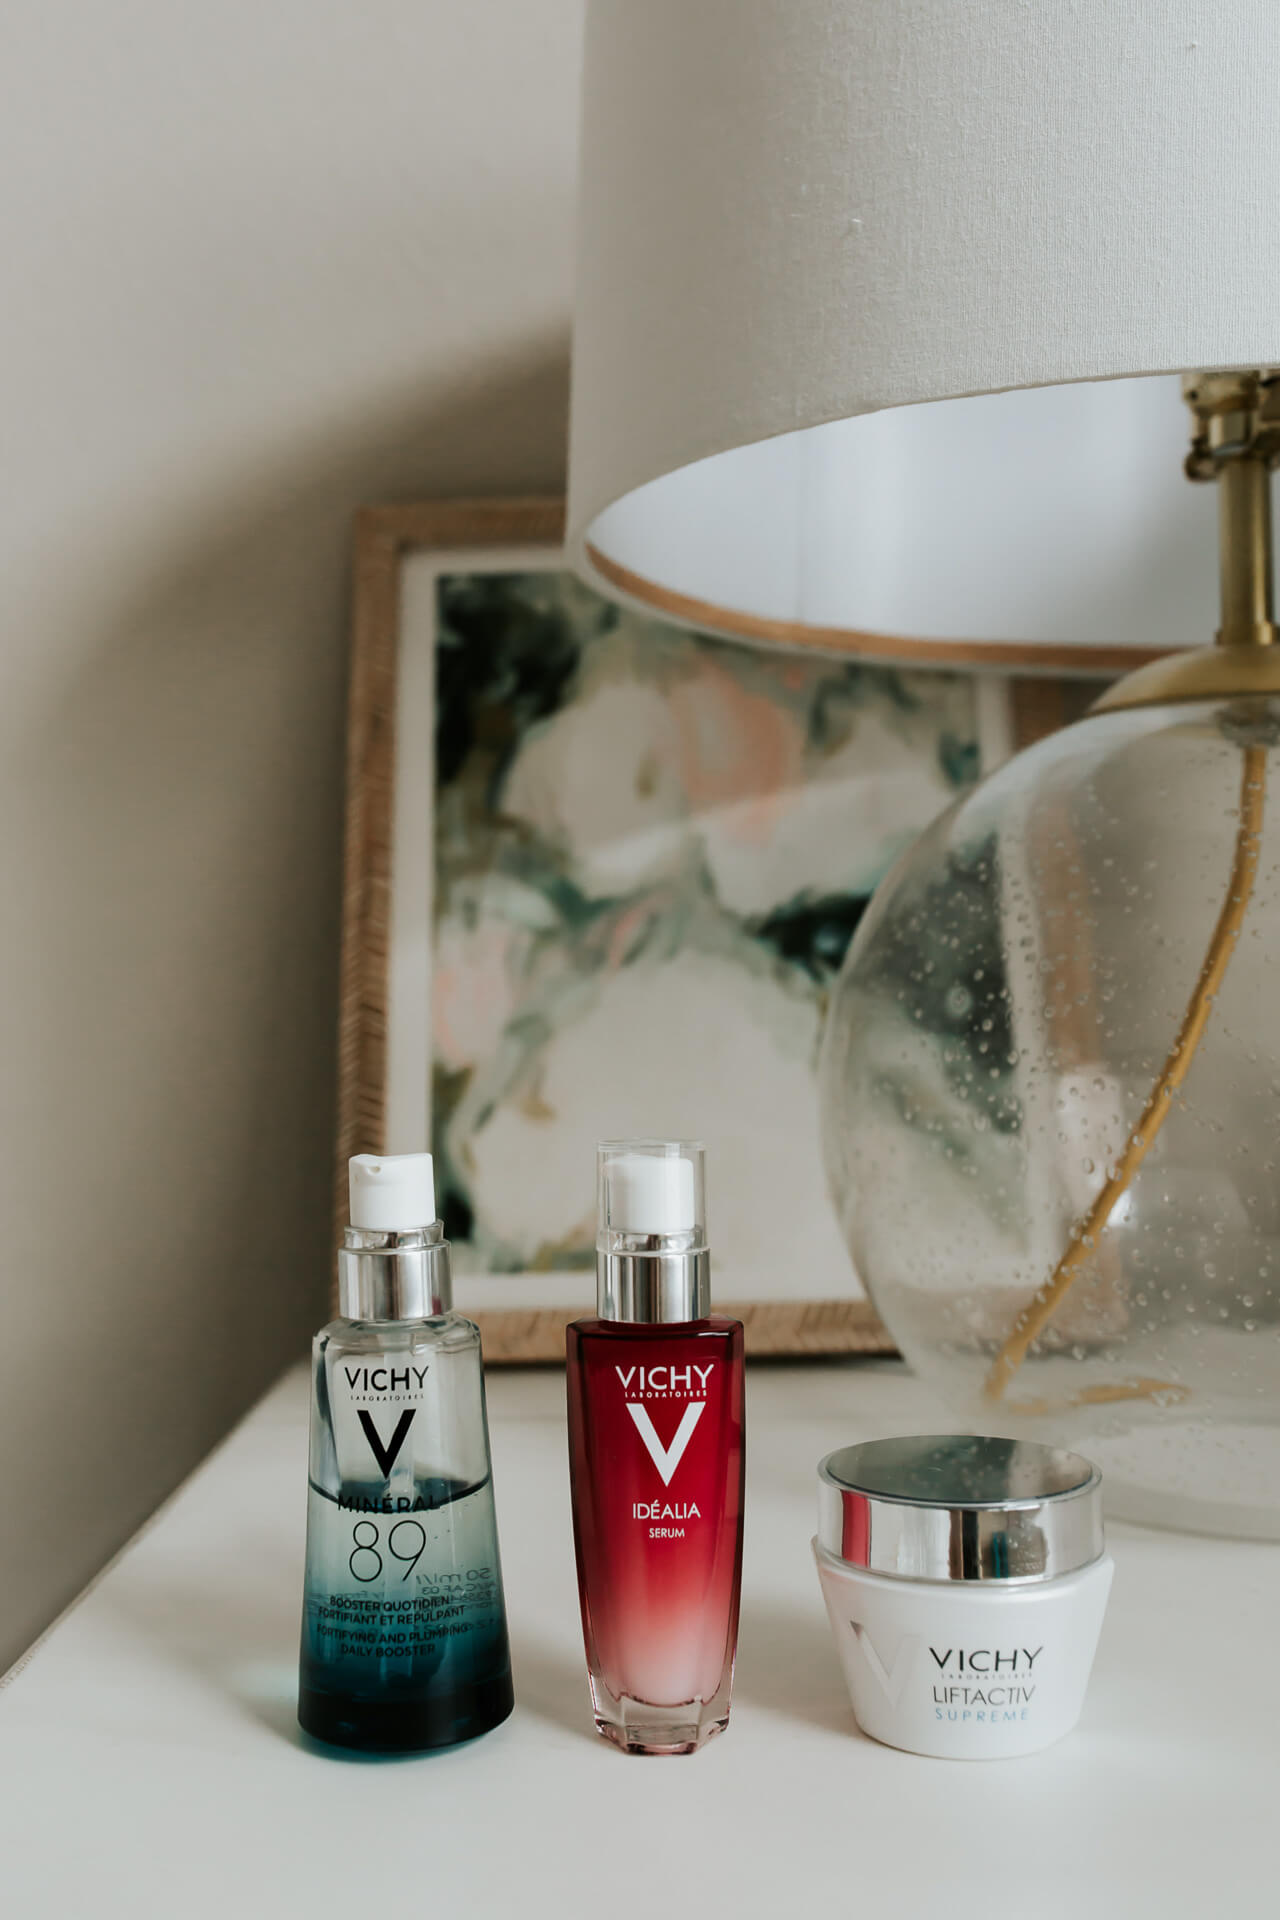 My top Vichy products to help with skin brightening and anti-aging